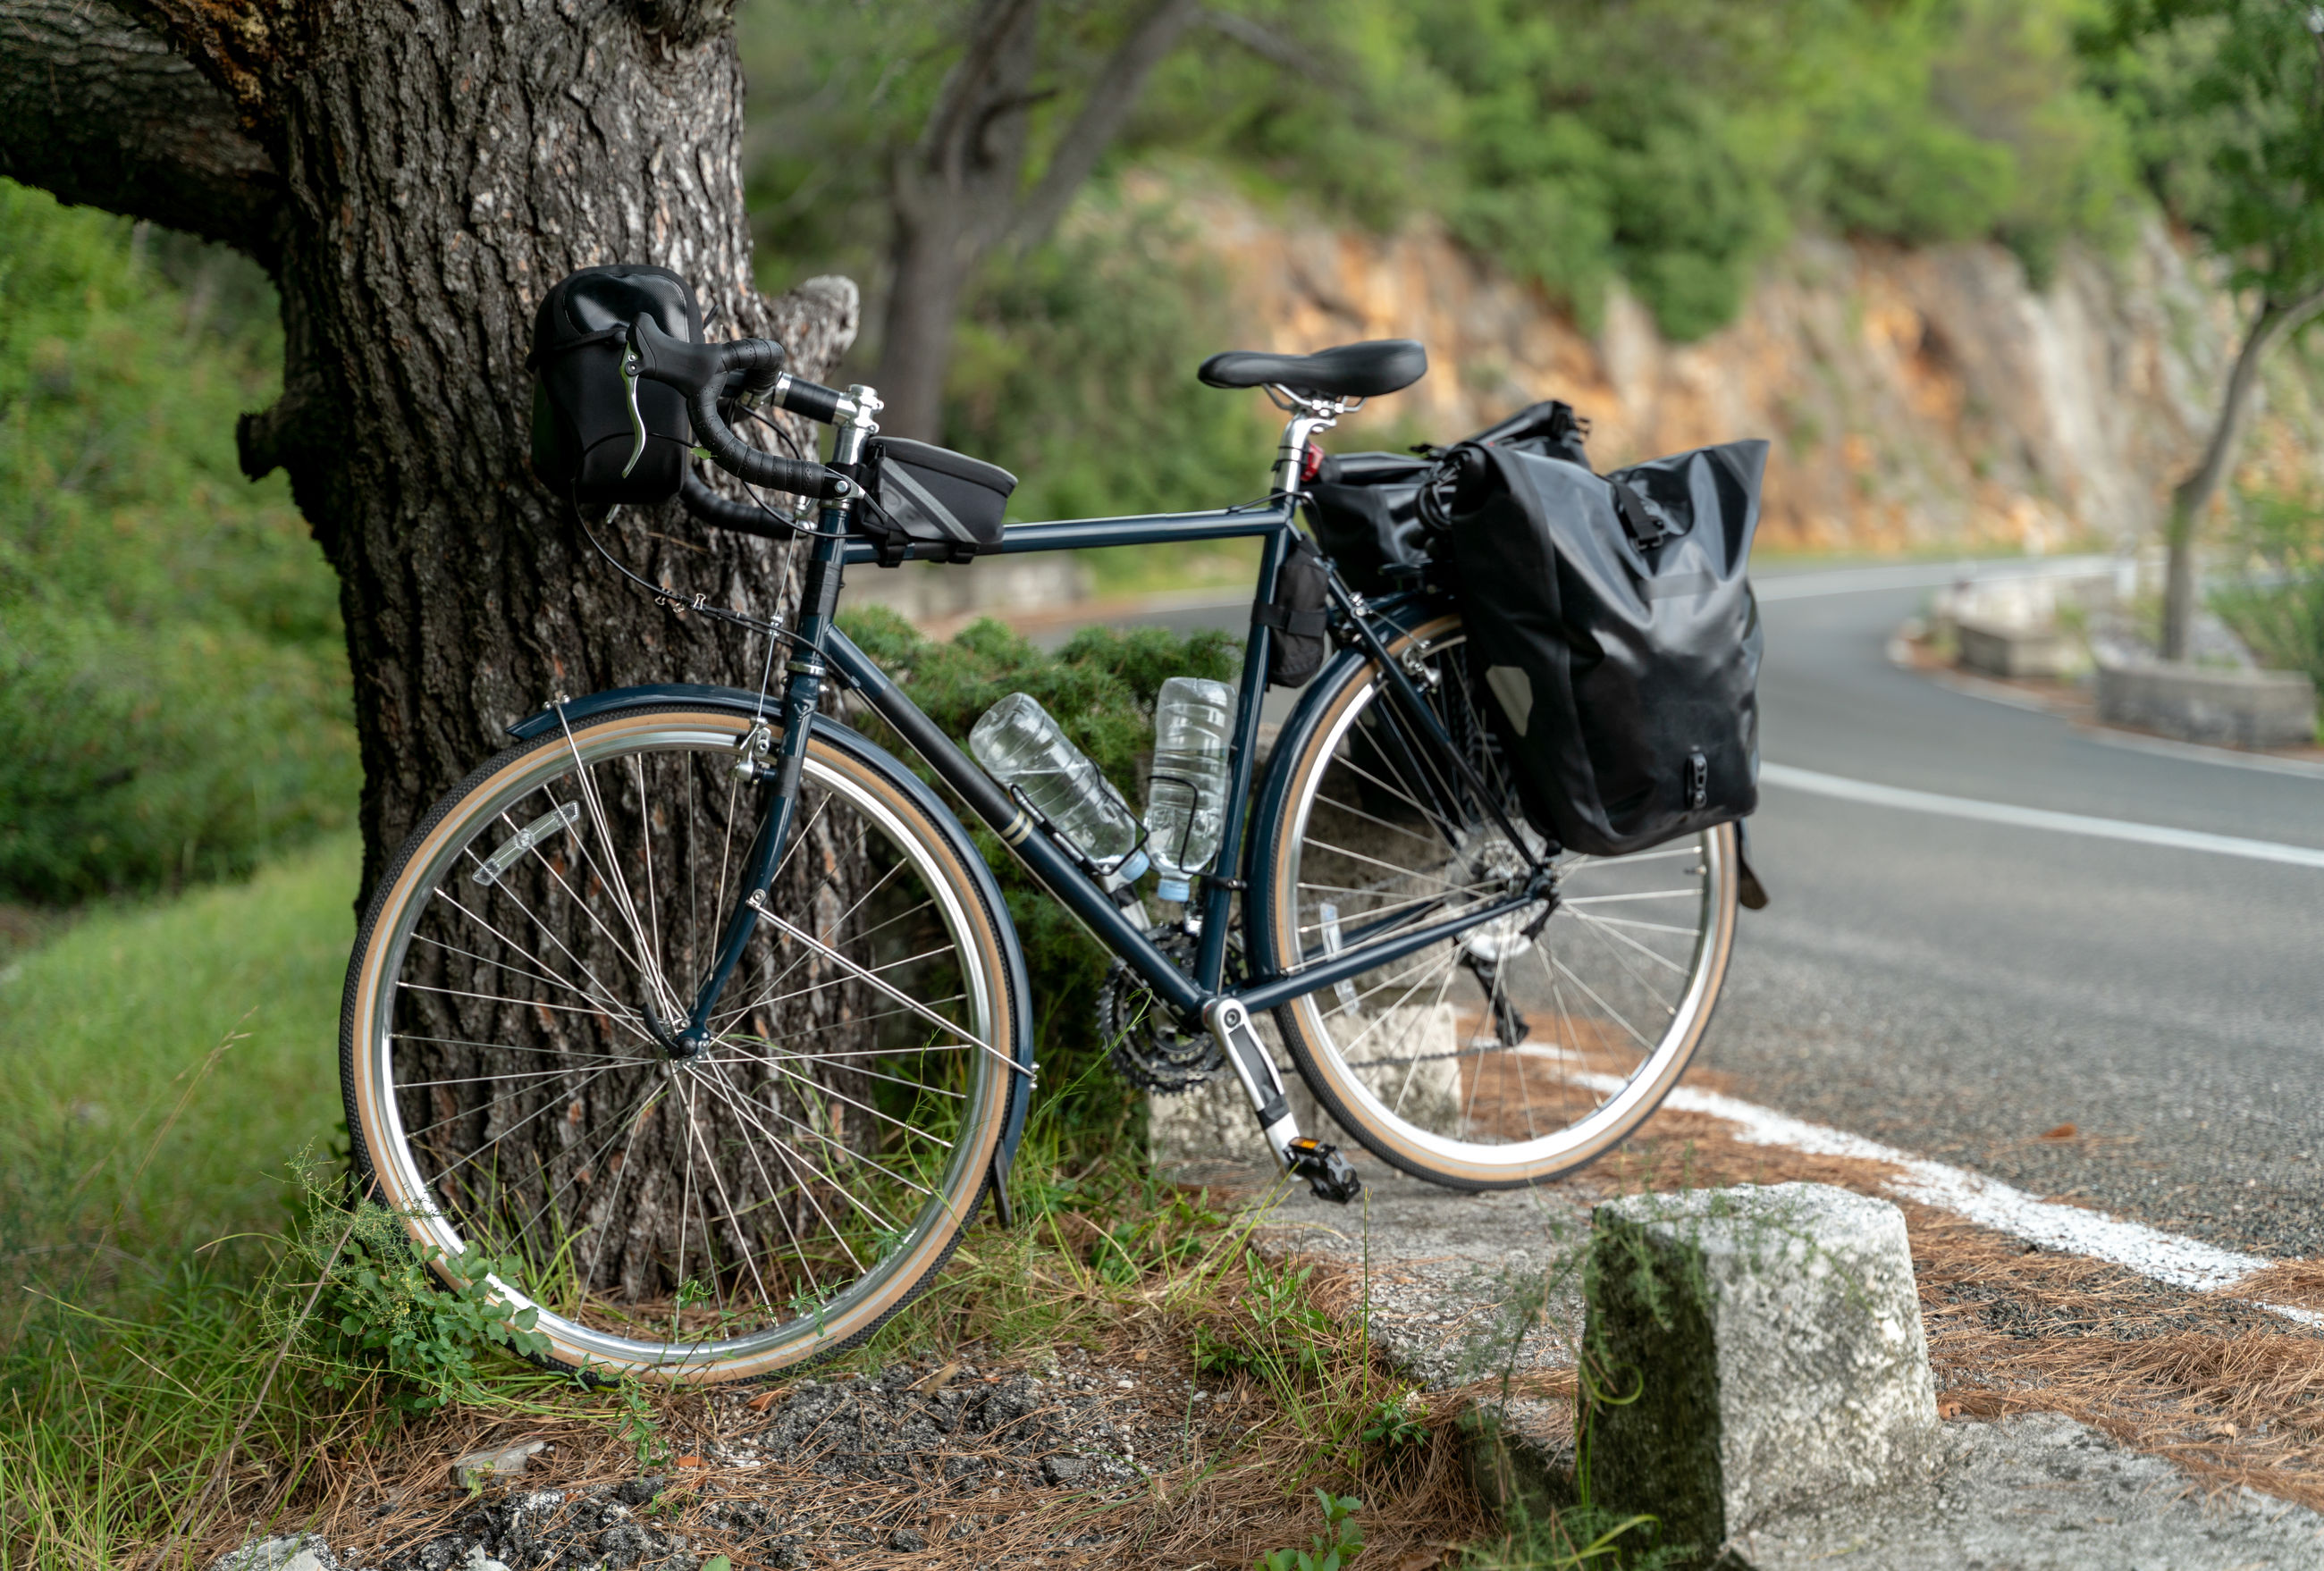 BICYCLES PARKED ON TREE TRUNK